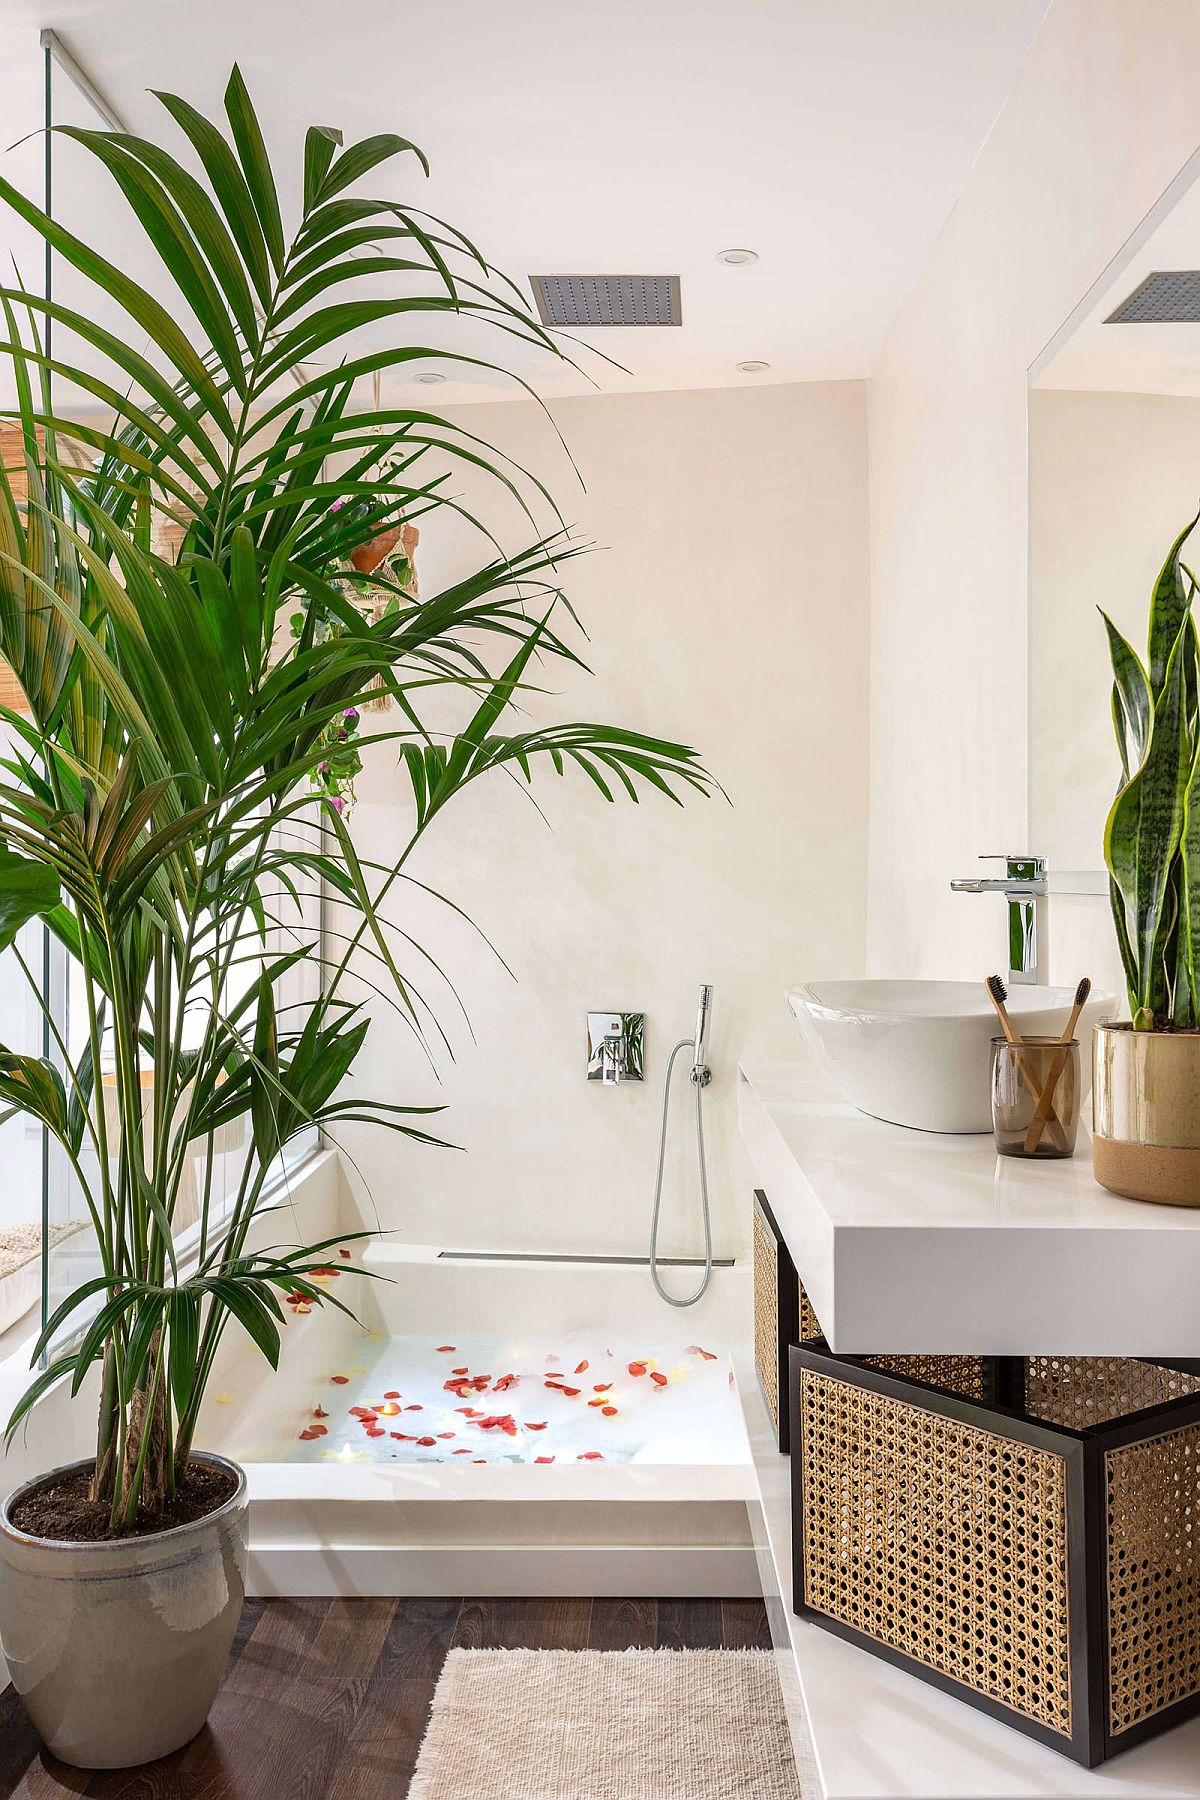 Space-savvy-and-stylish-tropical-bathroom-with-a-lovely-soaking-tub-30011